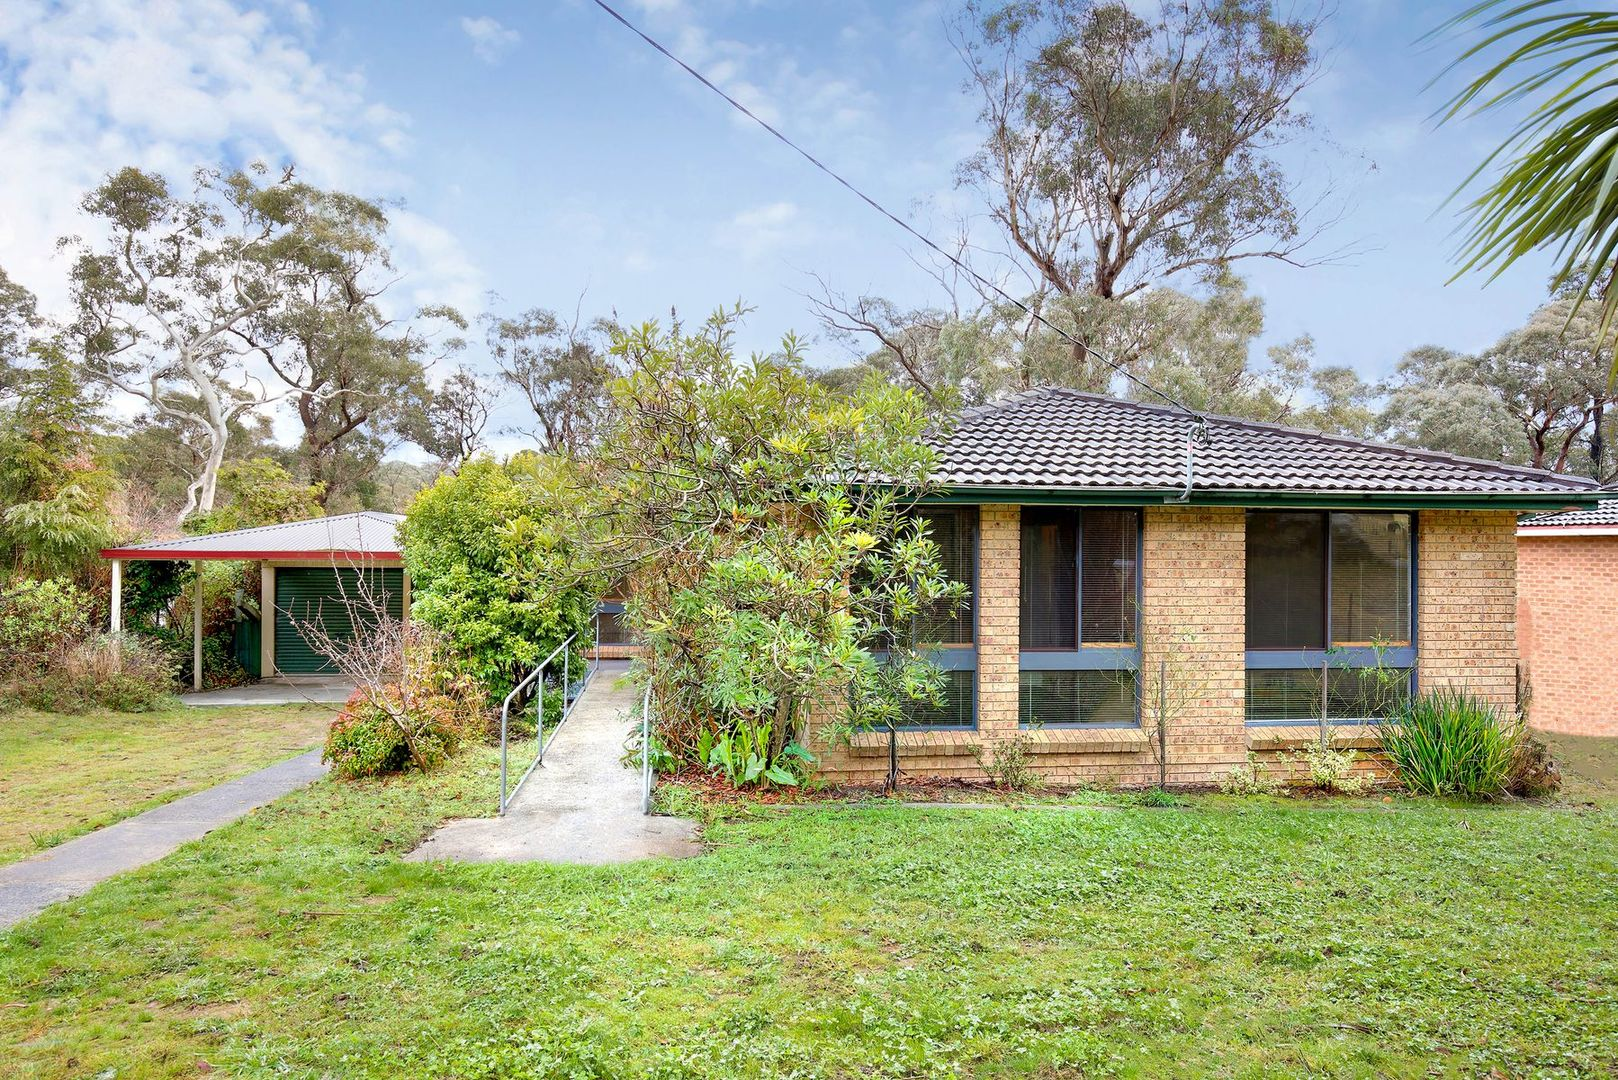 50 Minni Ha Ha Road, Katoomba NSW 2780, Image 0